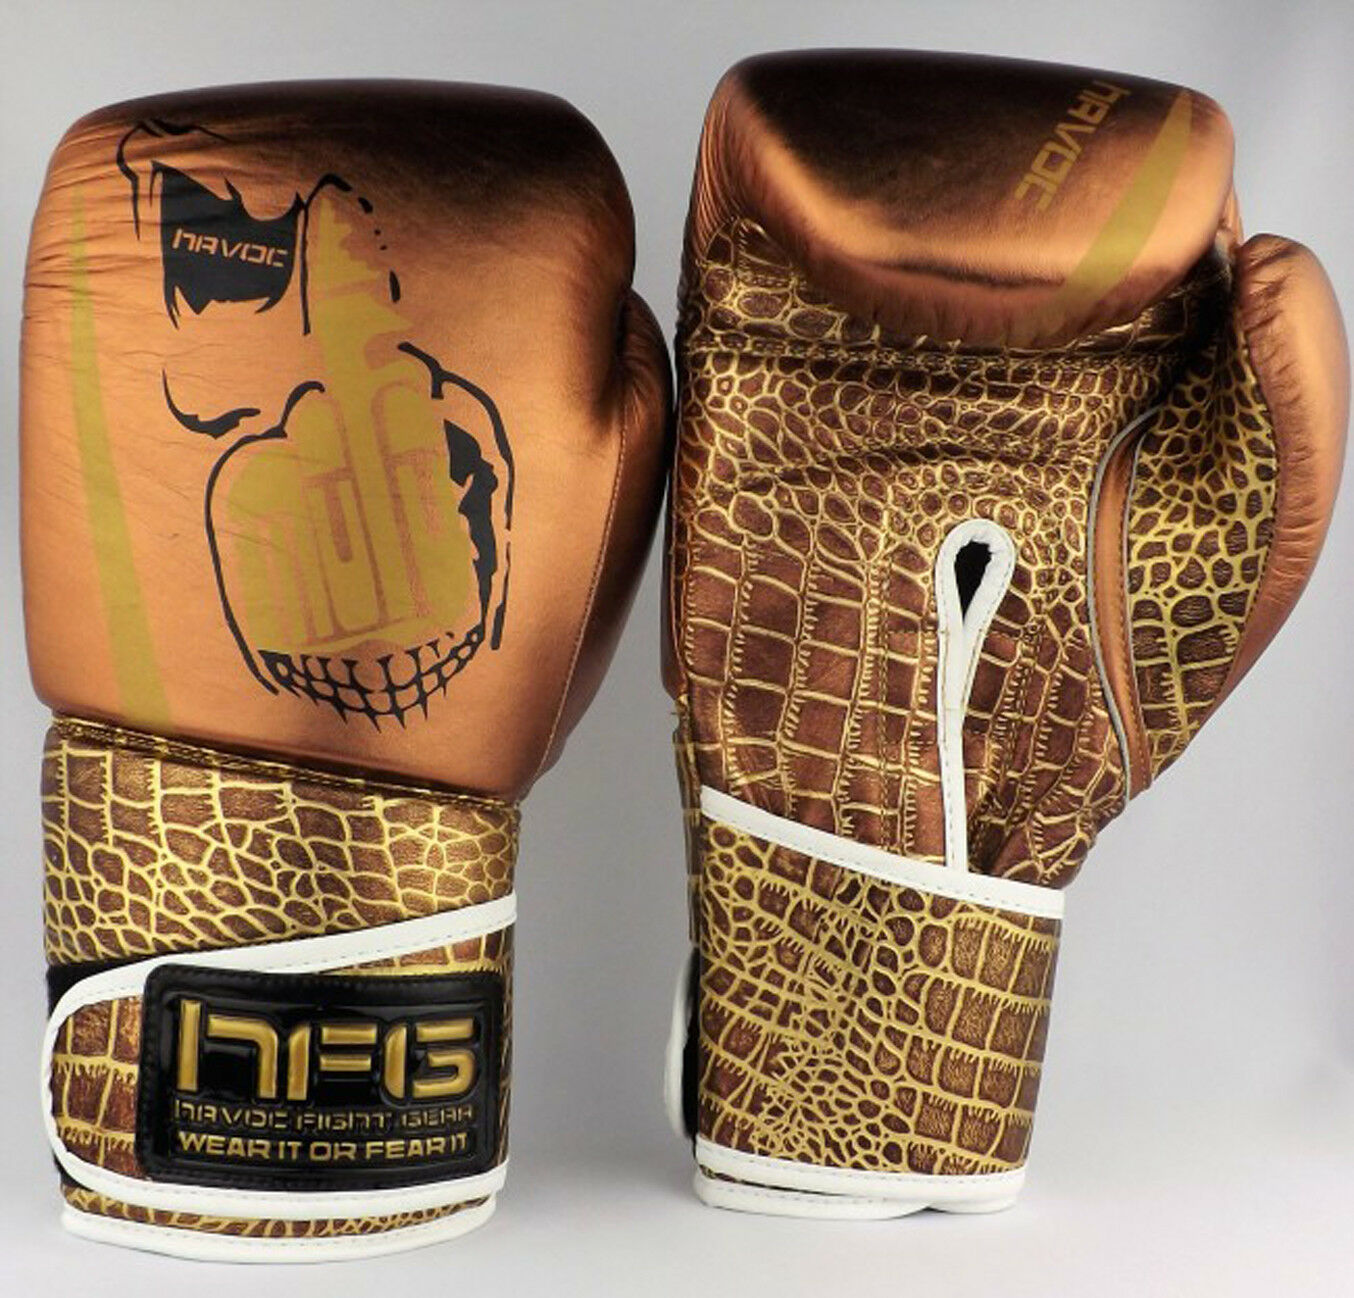 Ltd Edtn 16oz MOFO Sparring Leder Premium Boxing Sparring MOFO Gloves Havoc UK Boxing Gloves 6b514a